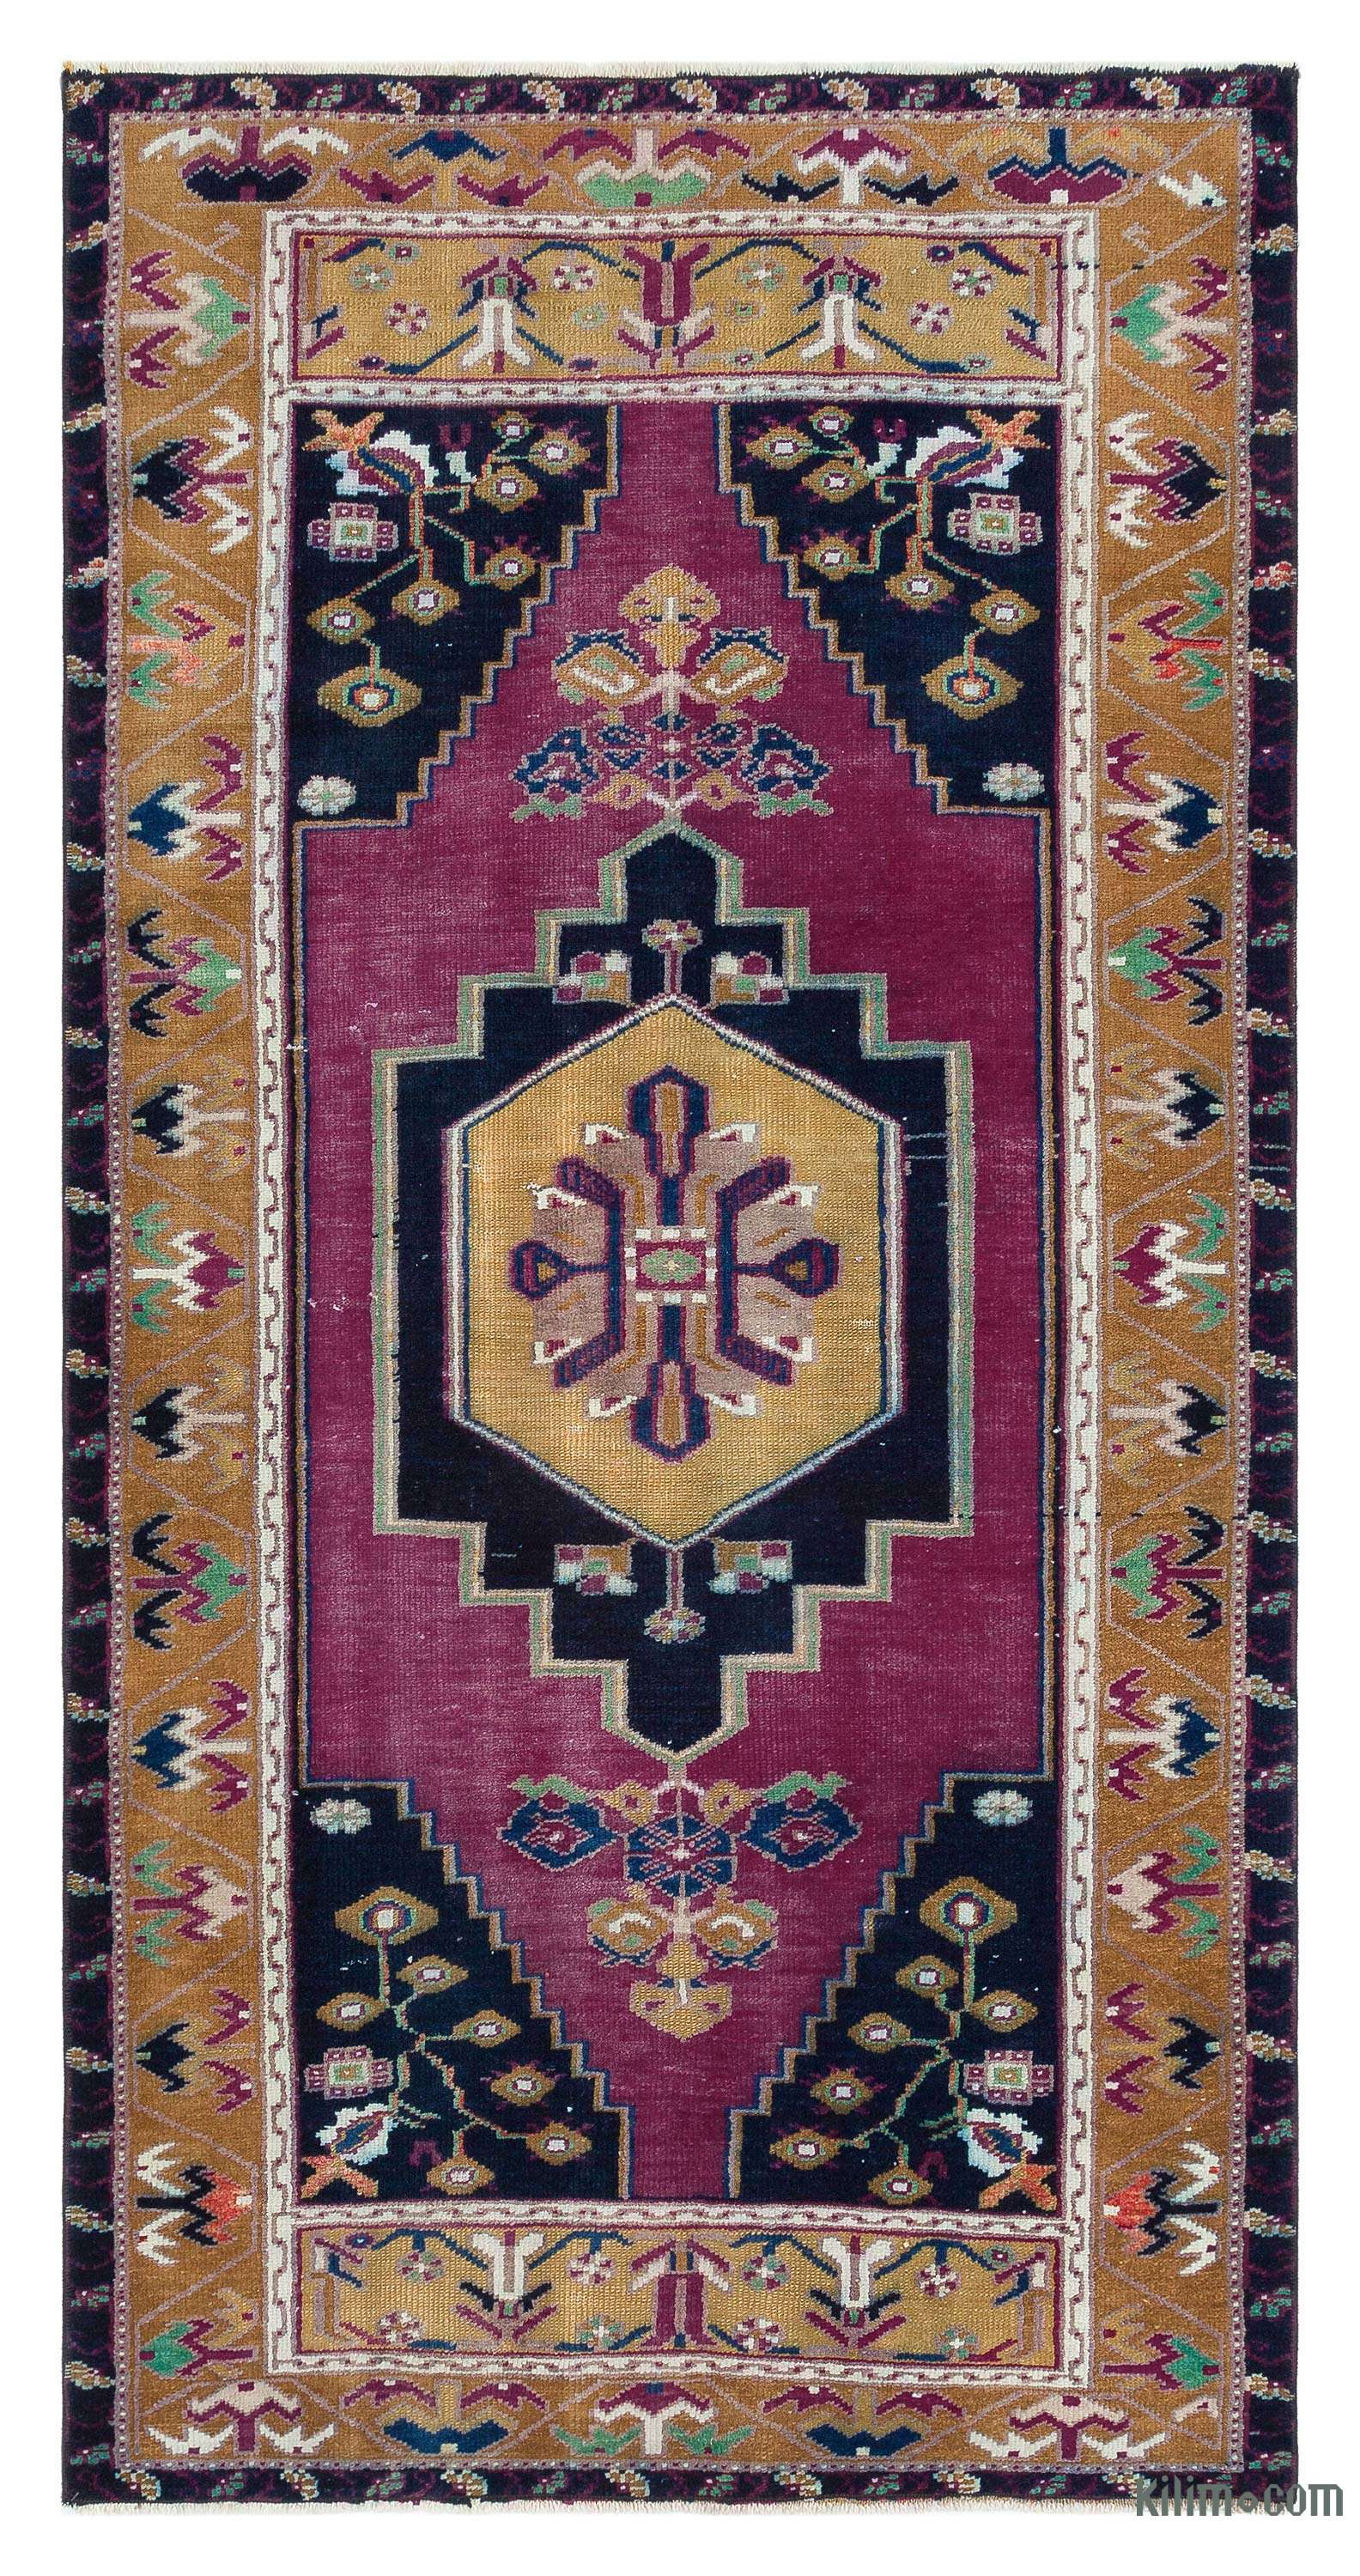 K0044624 Vintage Turkish Area Rug Anatoli 3 1 X 6 1 37 In X 73 In The Source For Hand Knotted Vintage Rugs Hand Woven Kilim Rugs Wool Turkish Rugs Overdyed Persian Rugs